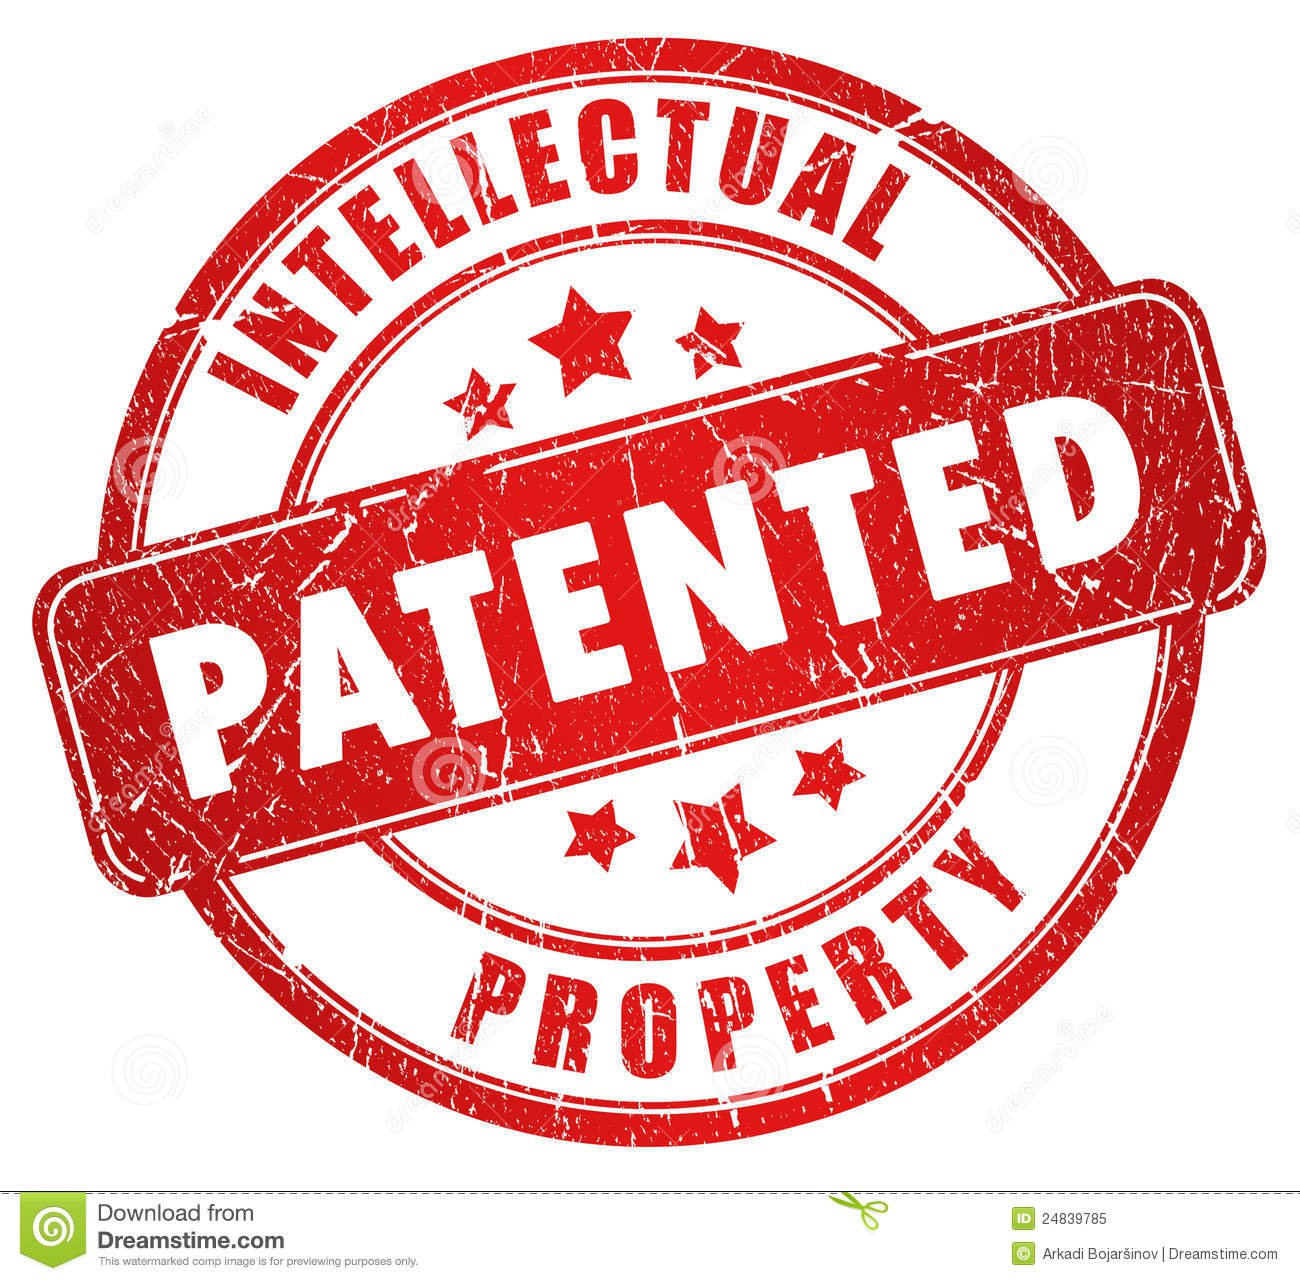 INVENTIONS THAT CANNOT BE PROTECTED AS UTILITY MODEL IN TURKISH PATENT SYSTEM